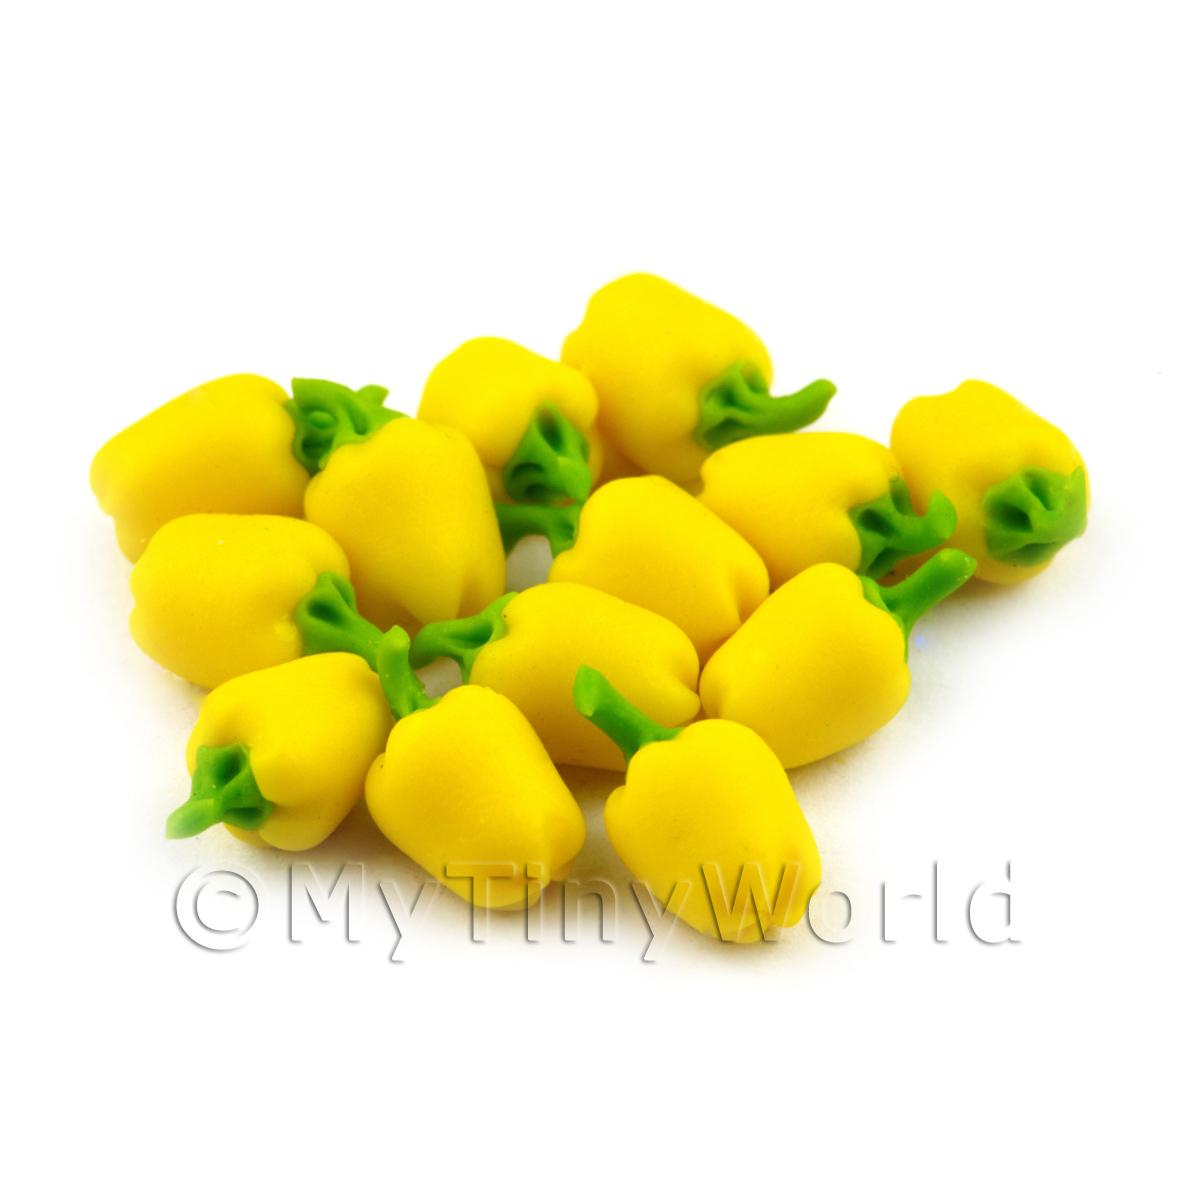 Dolls House Miniature Handmade Yellow Bell Pepper